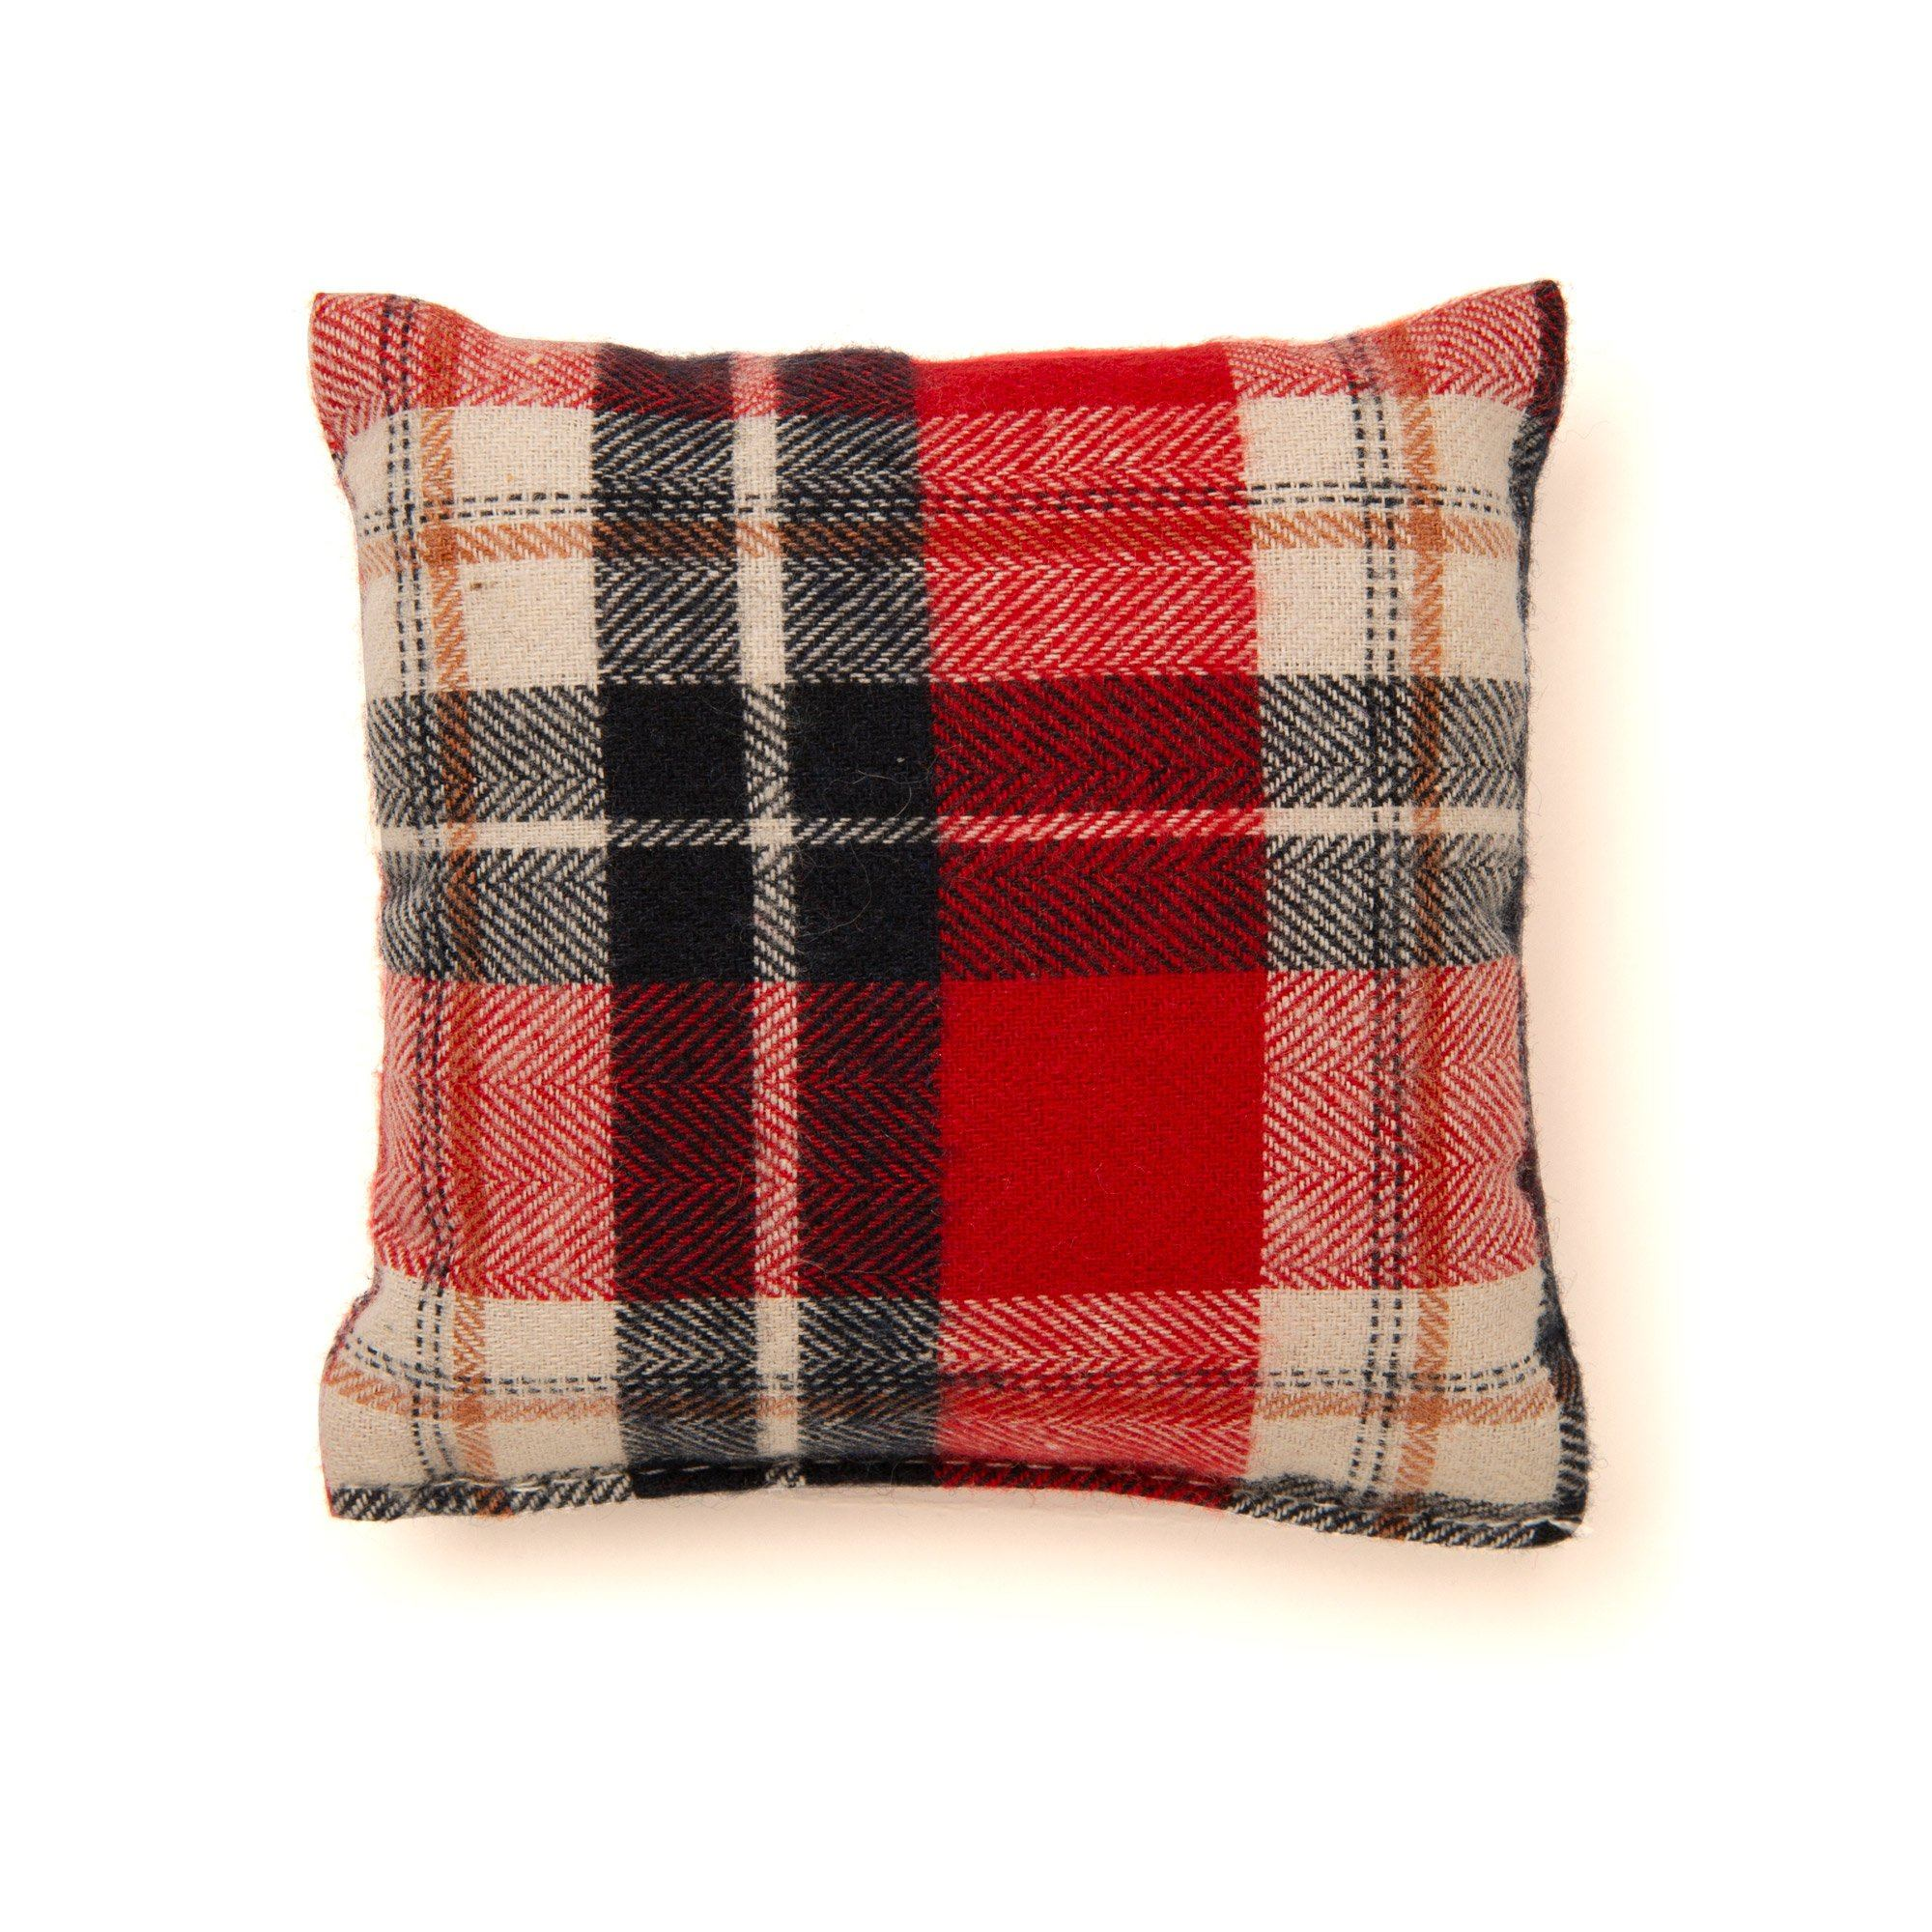 Plaid throw pillow suitable for dolls. Available at Maplelea.com